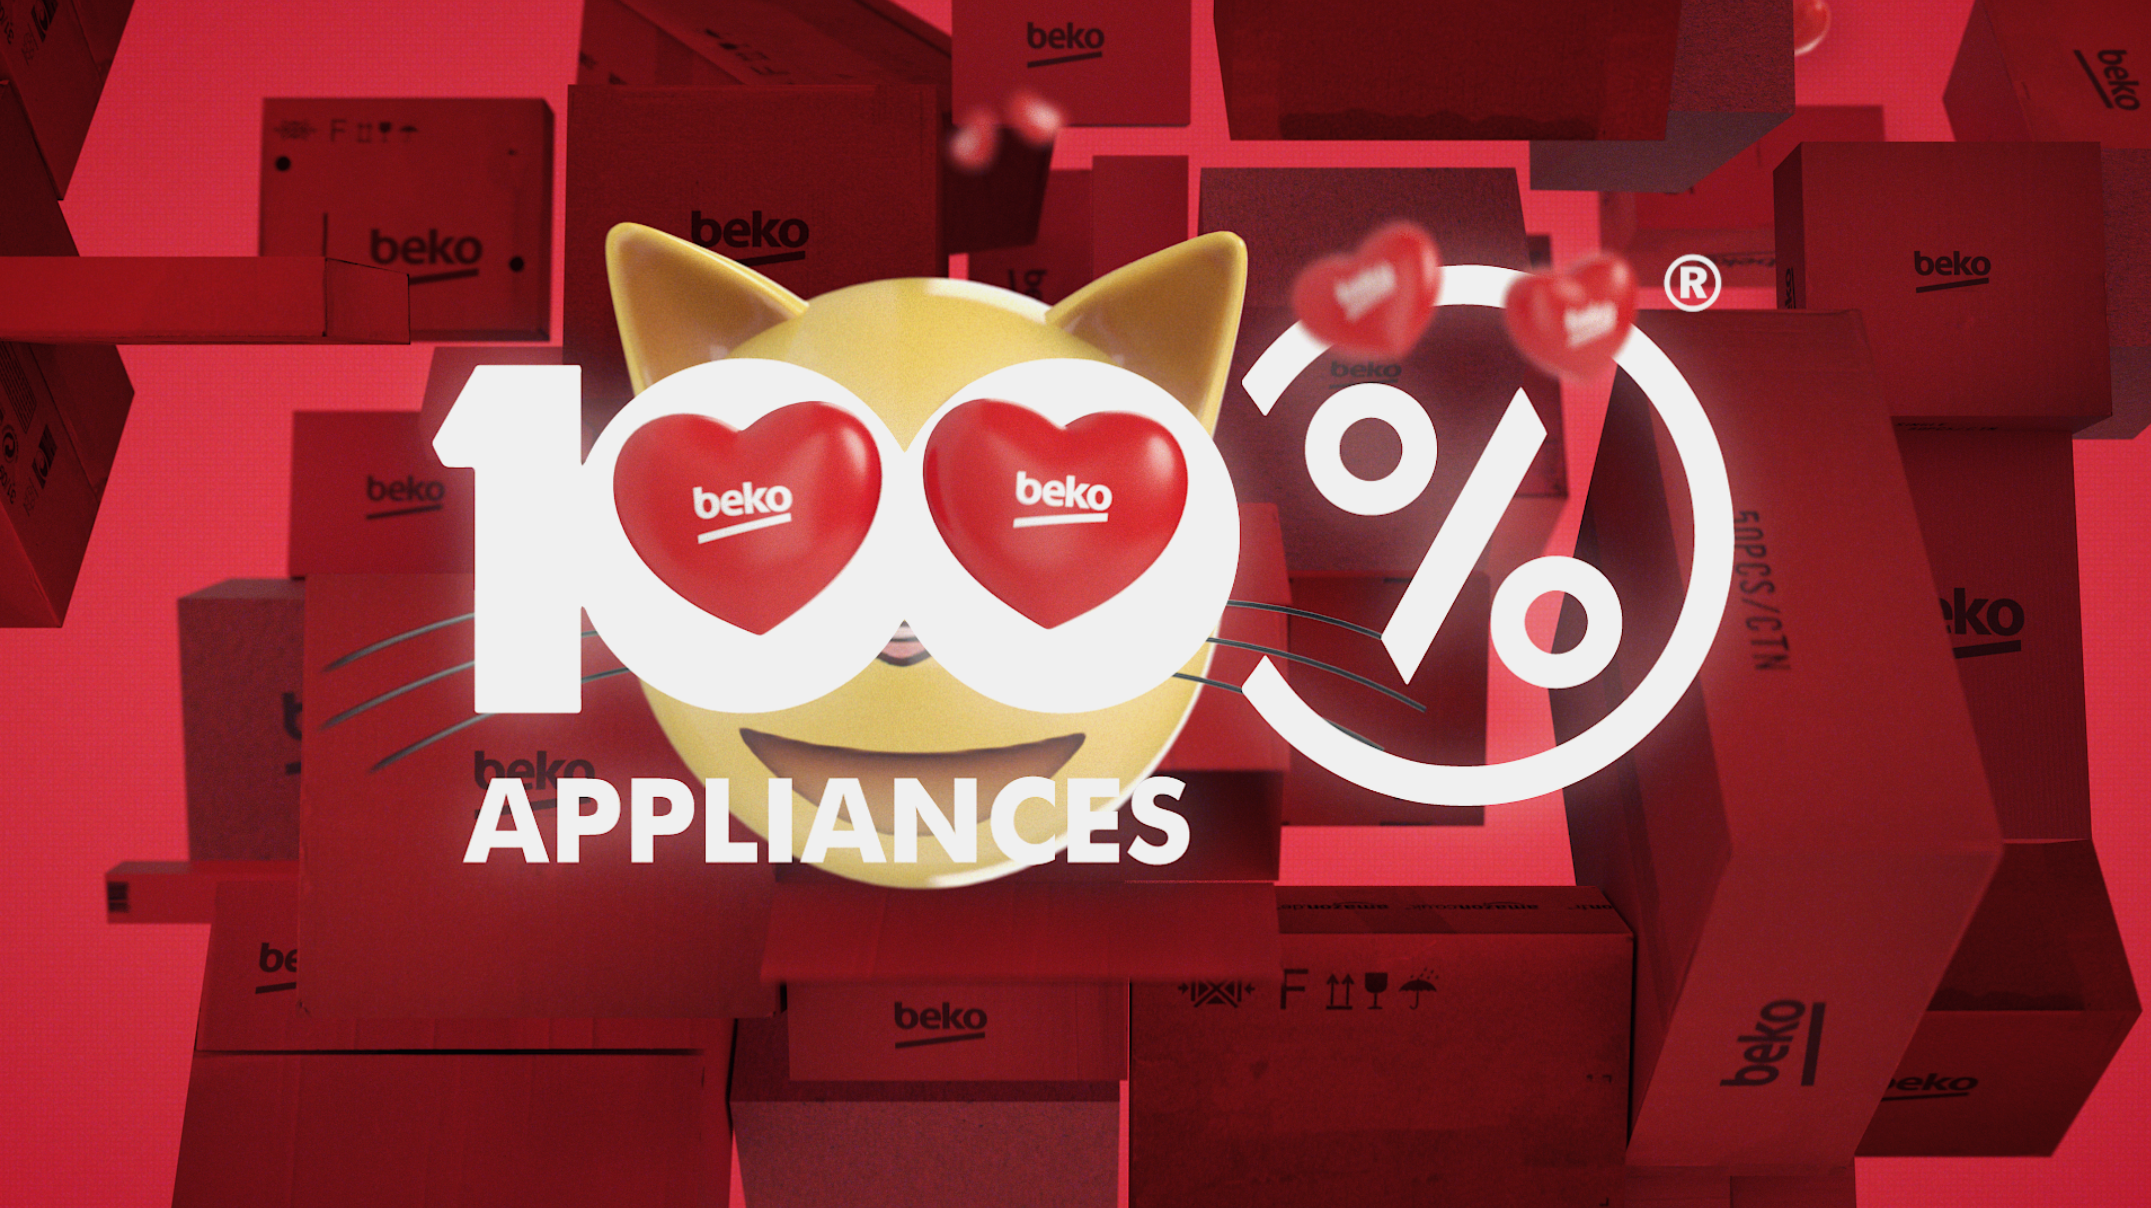 100% APPLIANCES